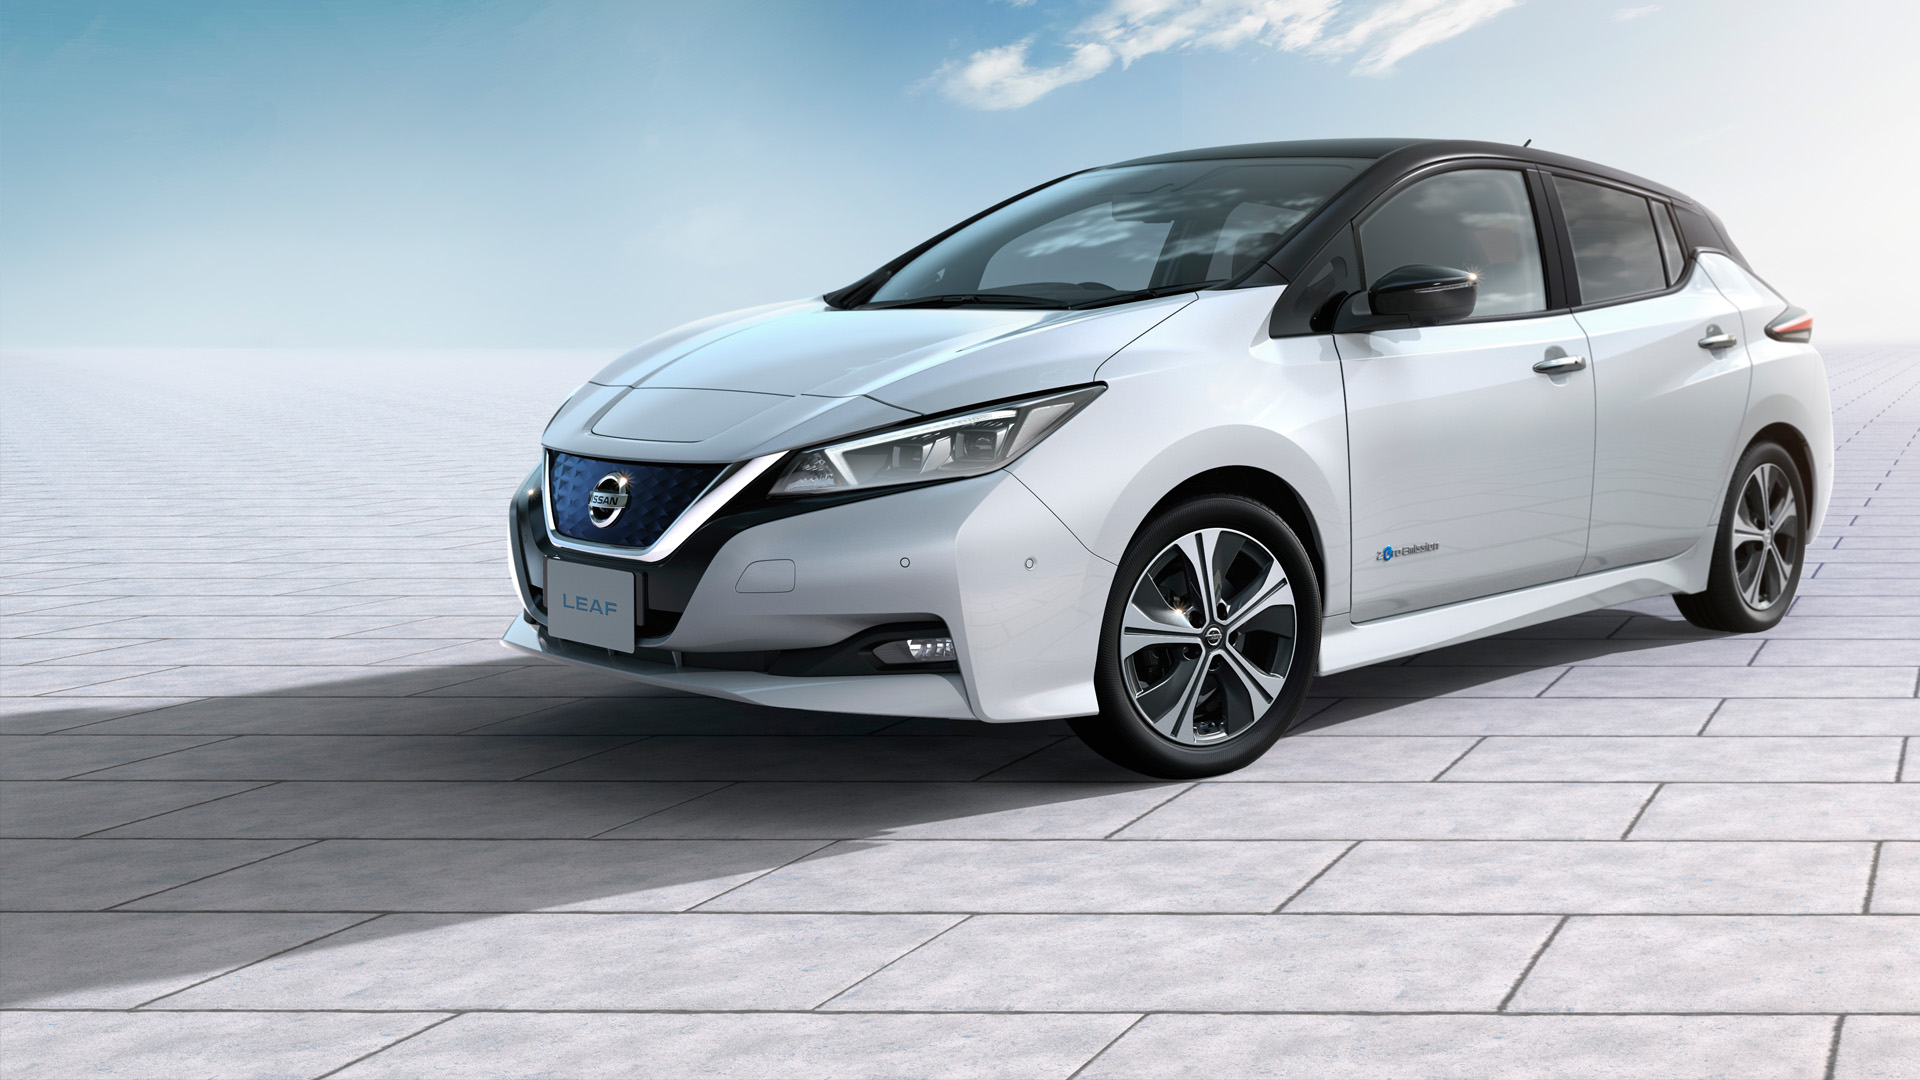 The best thing about driving an electric car — it's not what you think